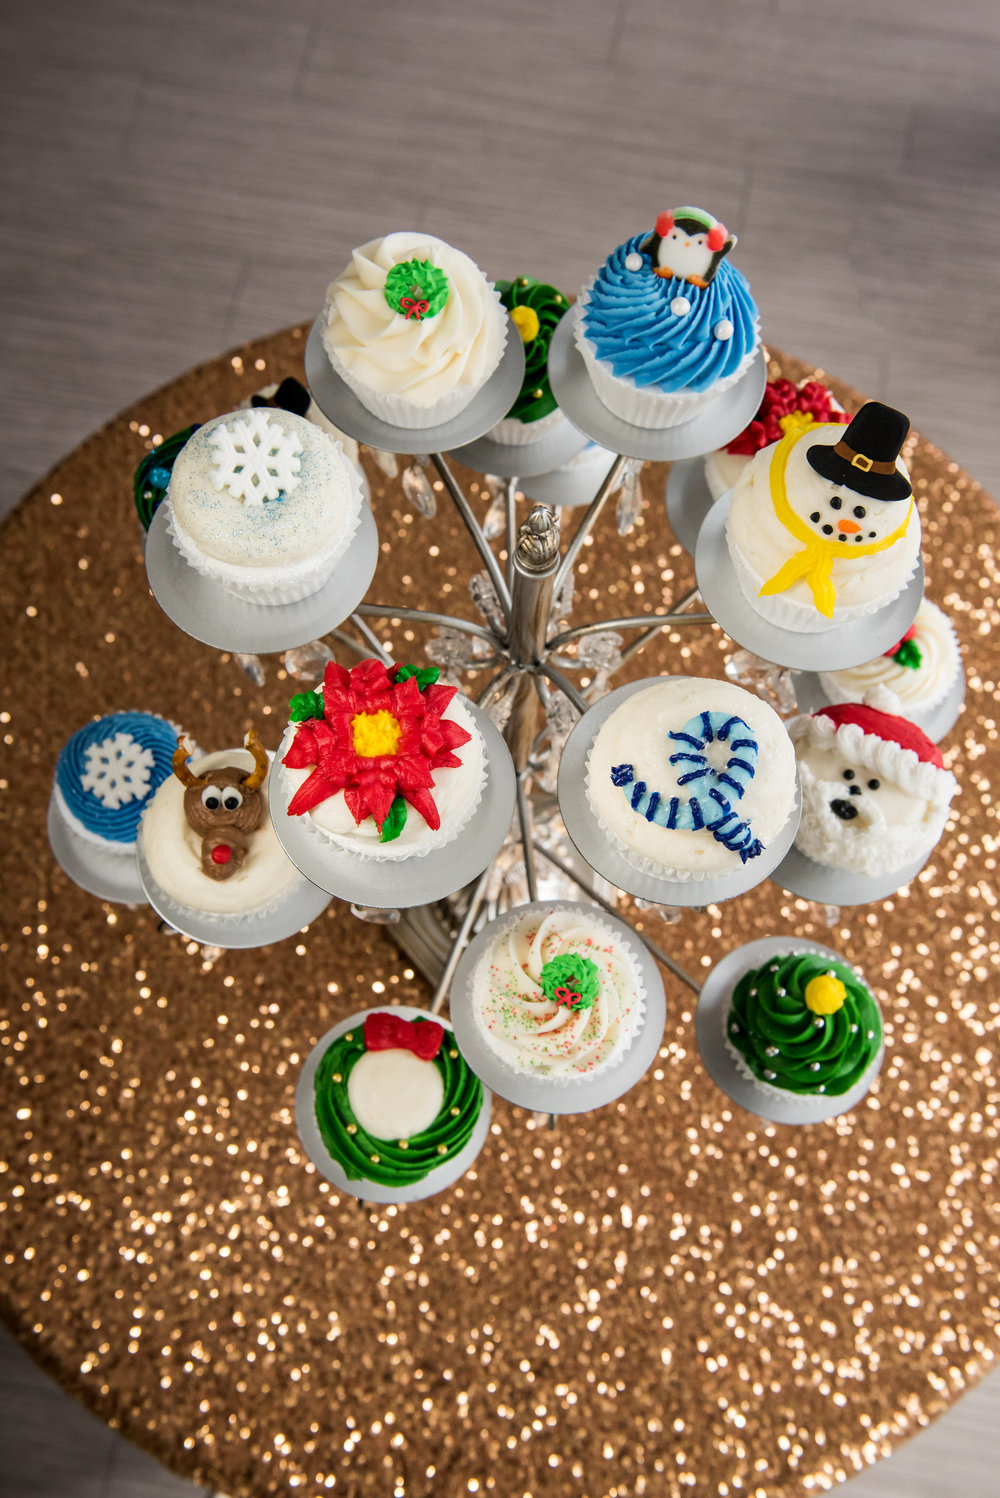 Christmas & Hanukkah Cake Photos   Edible Art Bakery ...